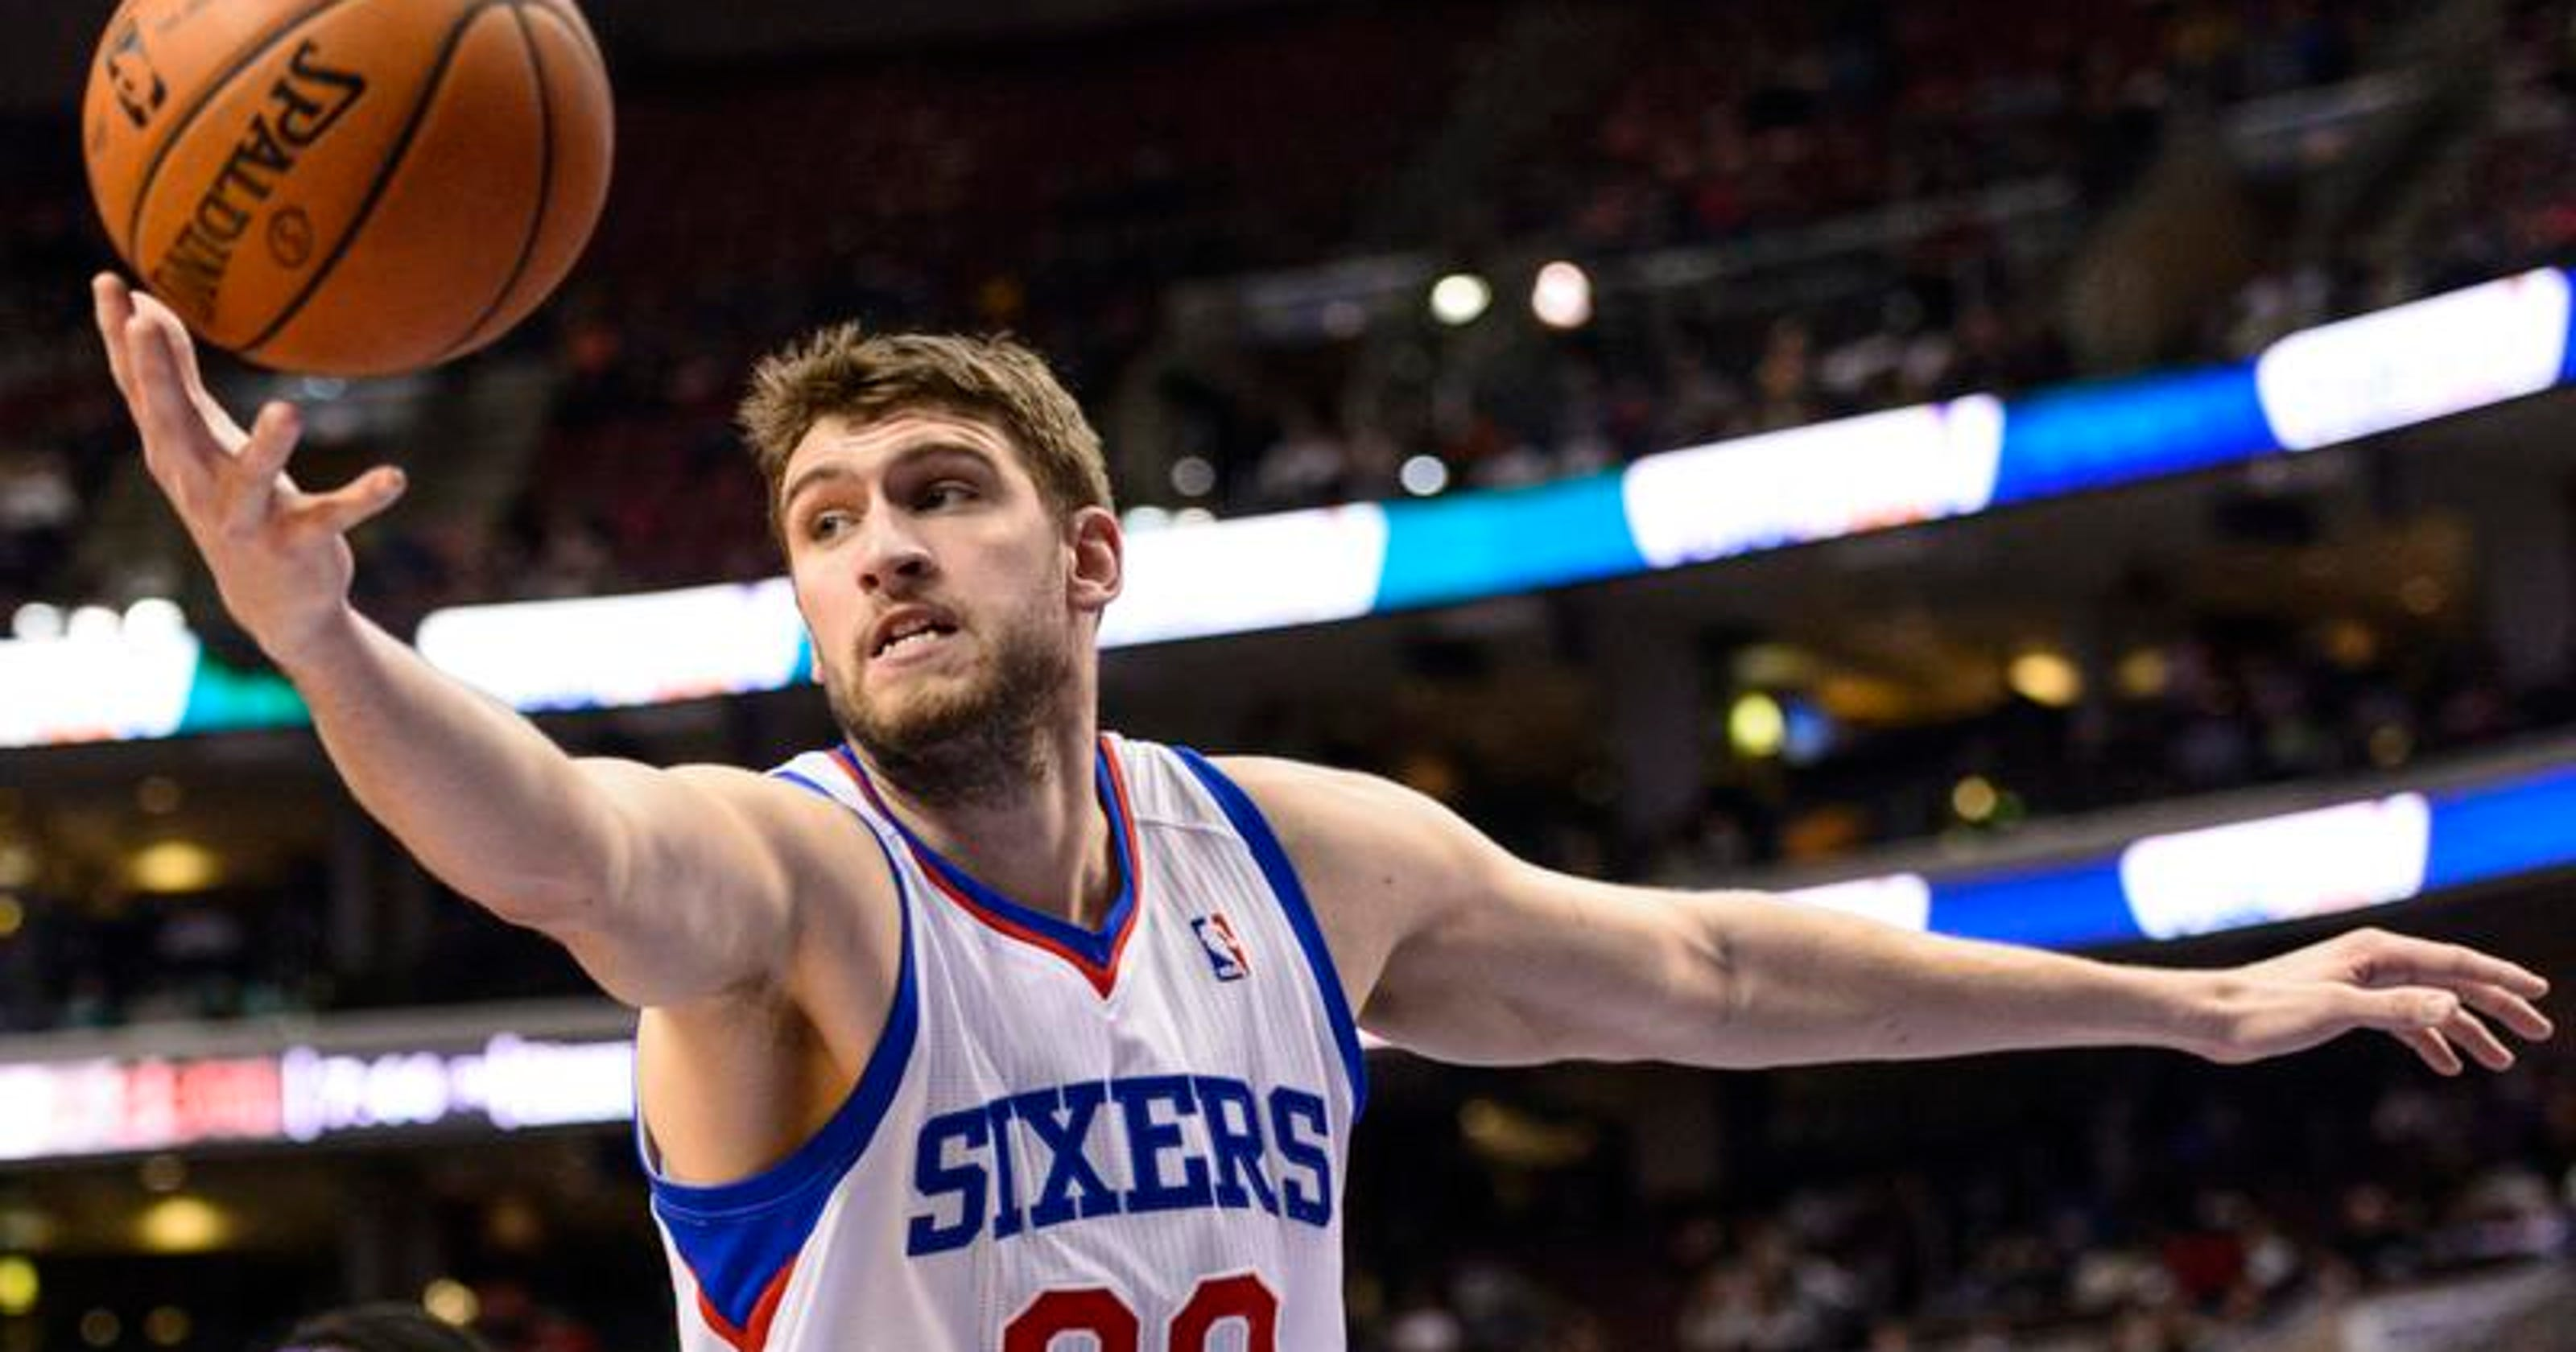 Sixers trade Hawes, get 3 players and 4 second-round picks